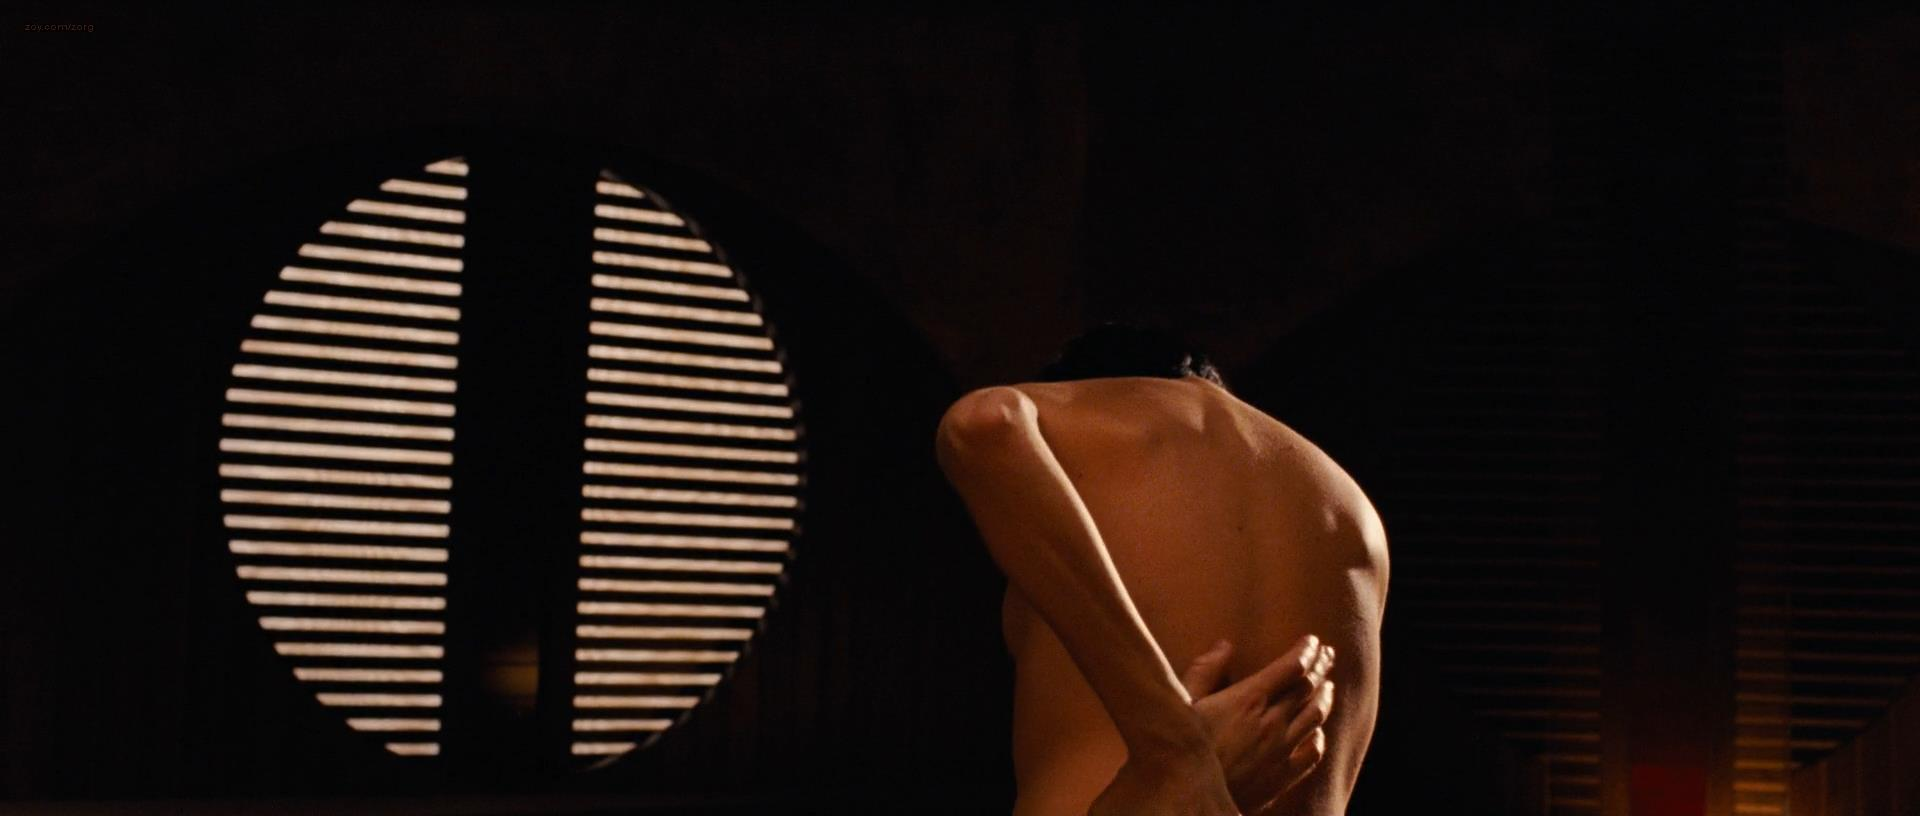 charlez theron nude and naked aeon flux